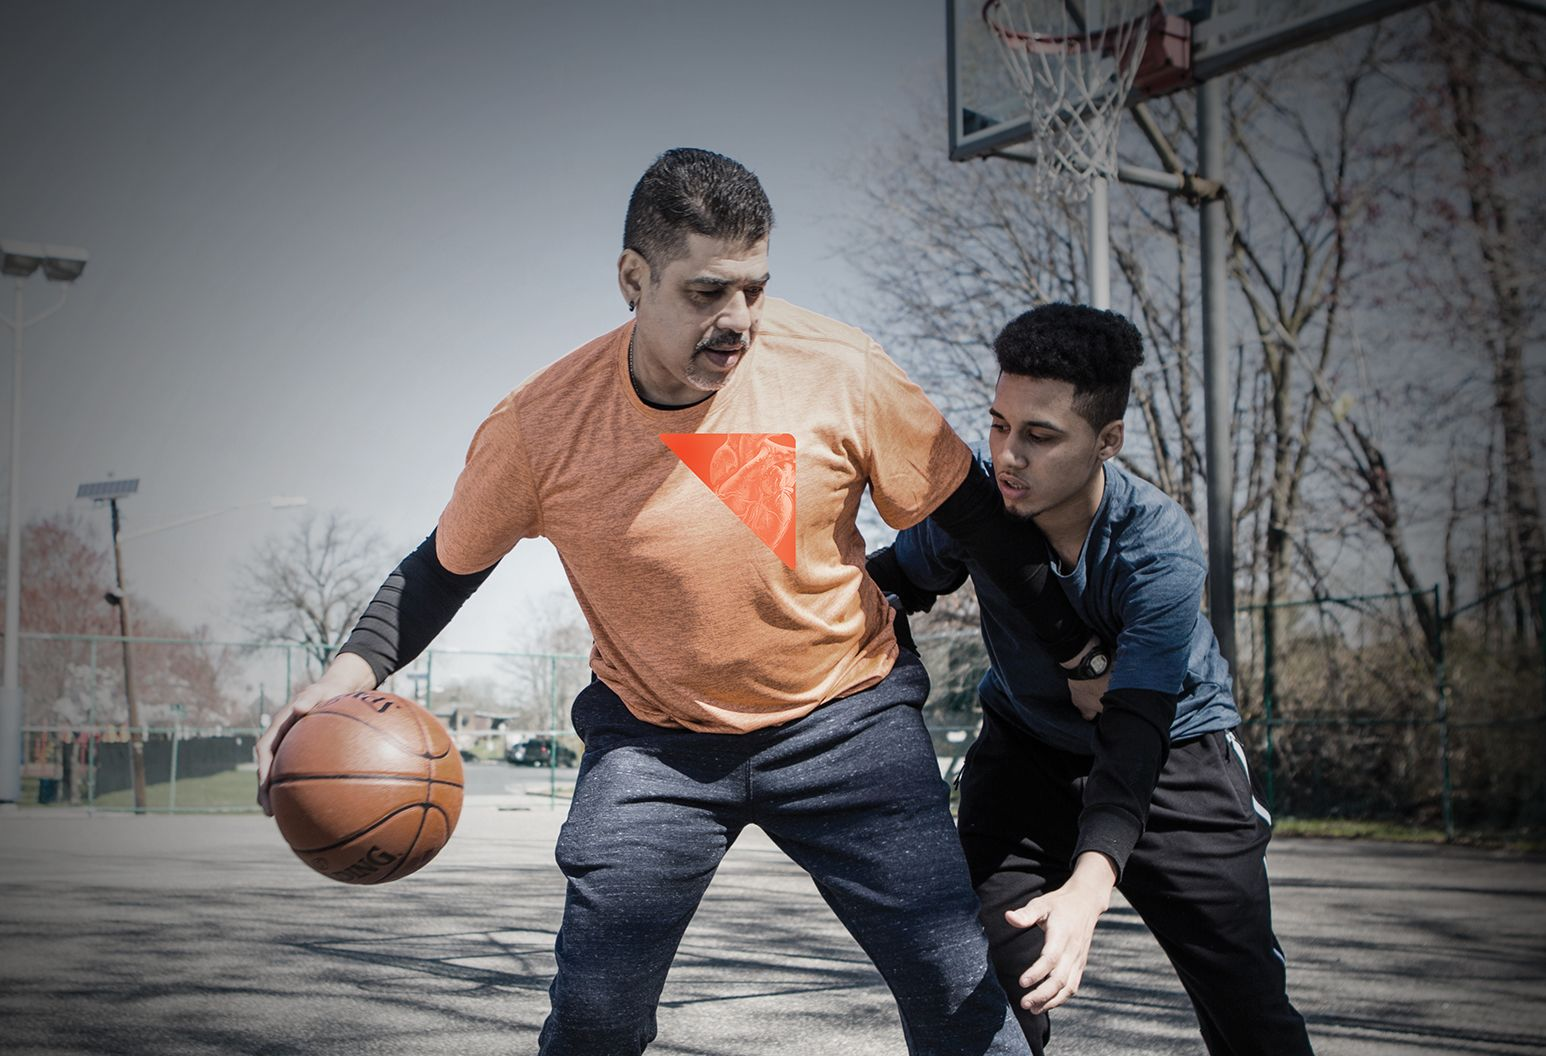 A man and a boy play basketball on a court. The man has the ball in his hand and the boy is trying to get the ball. There is an orange constellation over the man's heart.